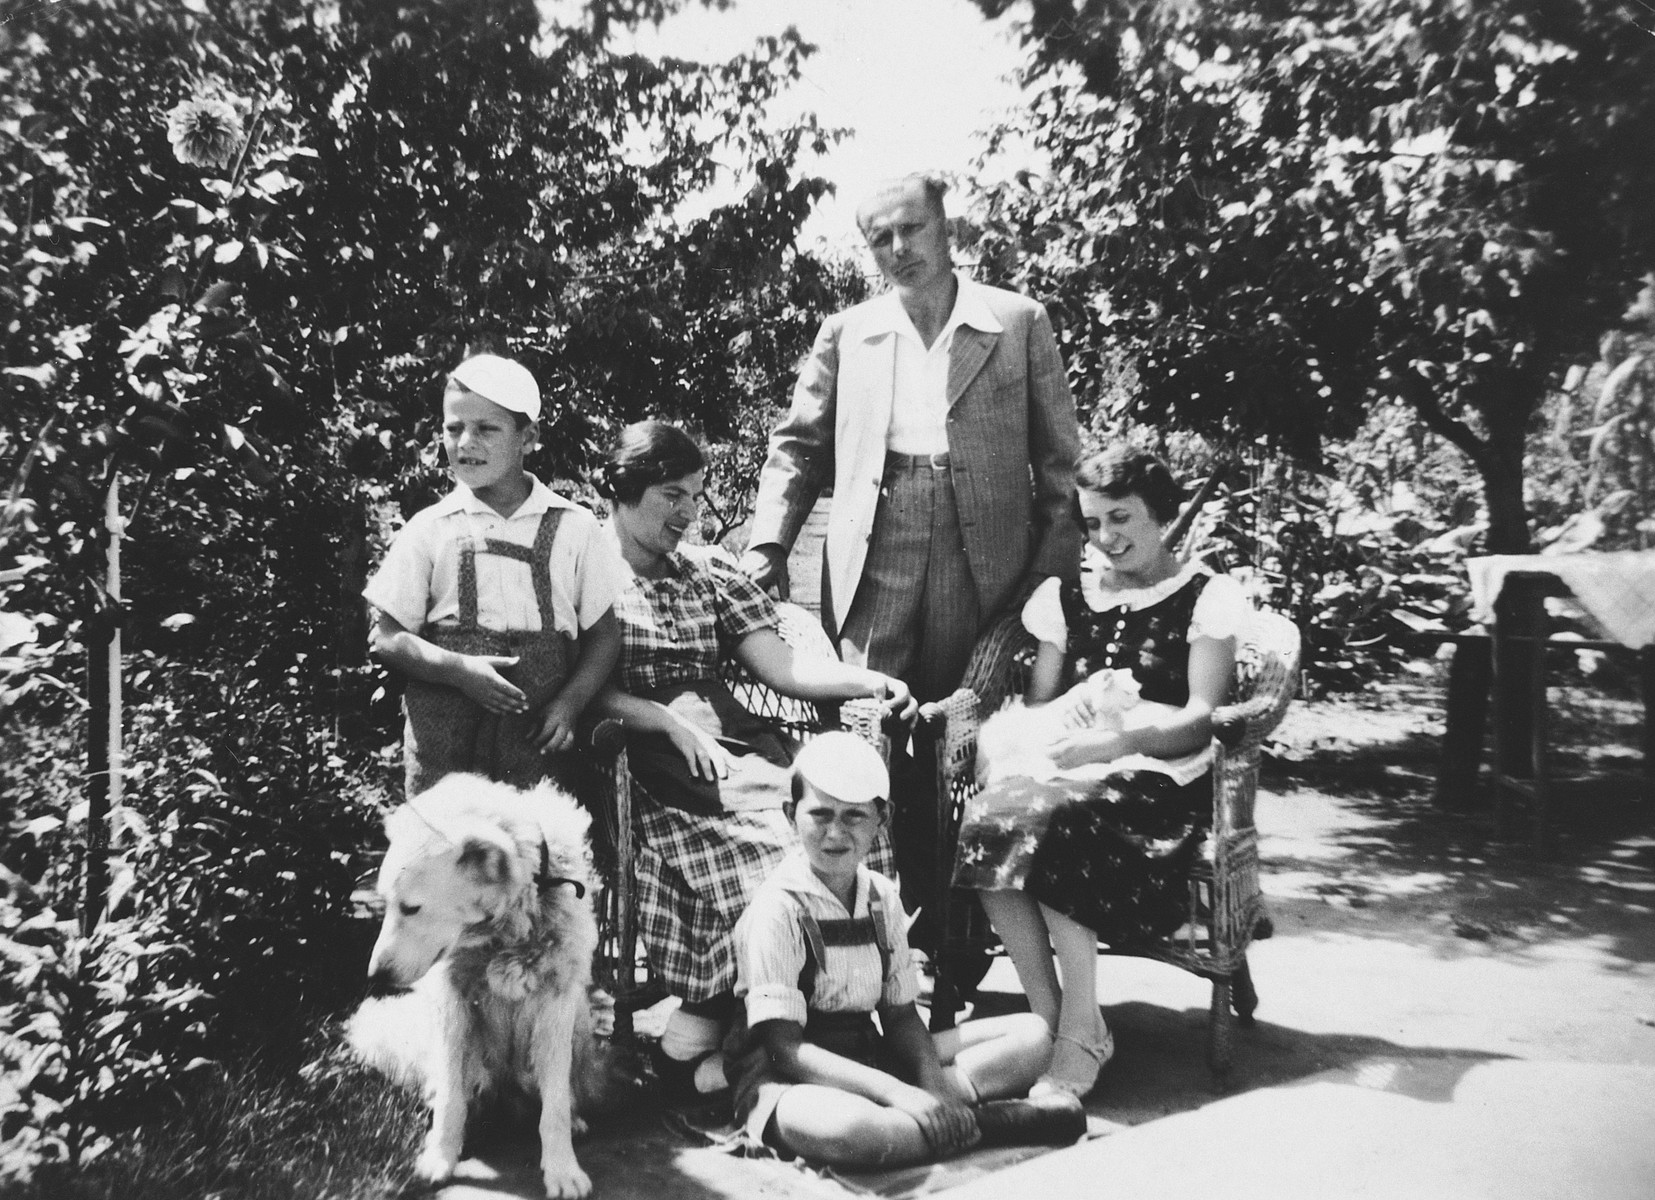 The Mayer family poses for a family portrait with their dog while vacationing in a rented cottage in the Hungarian countryside.